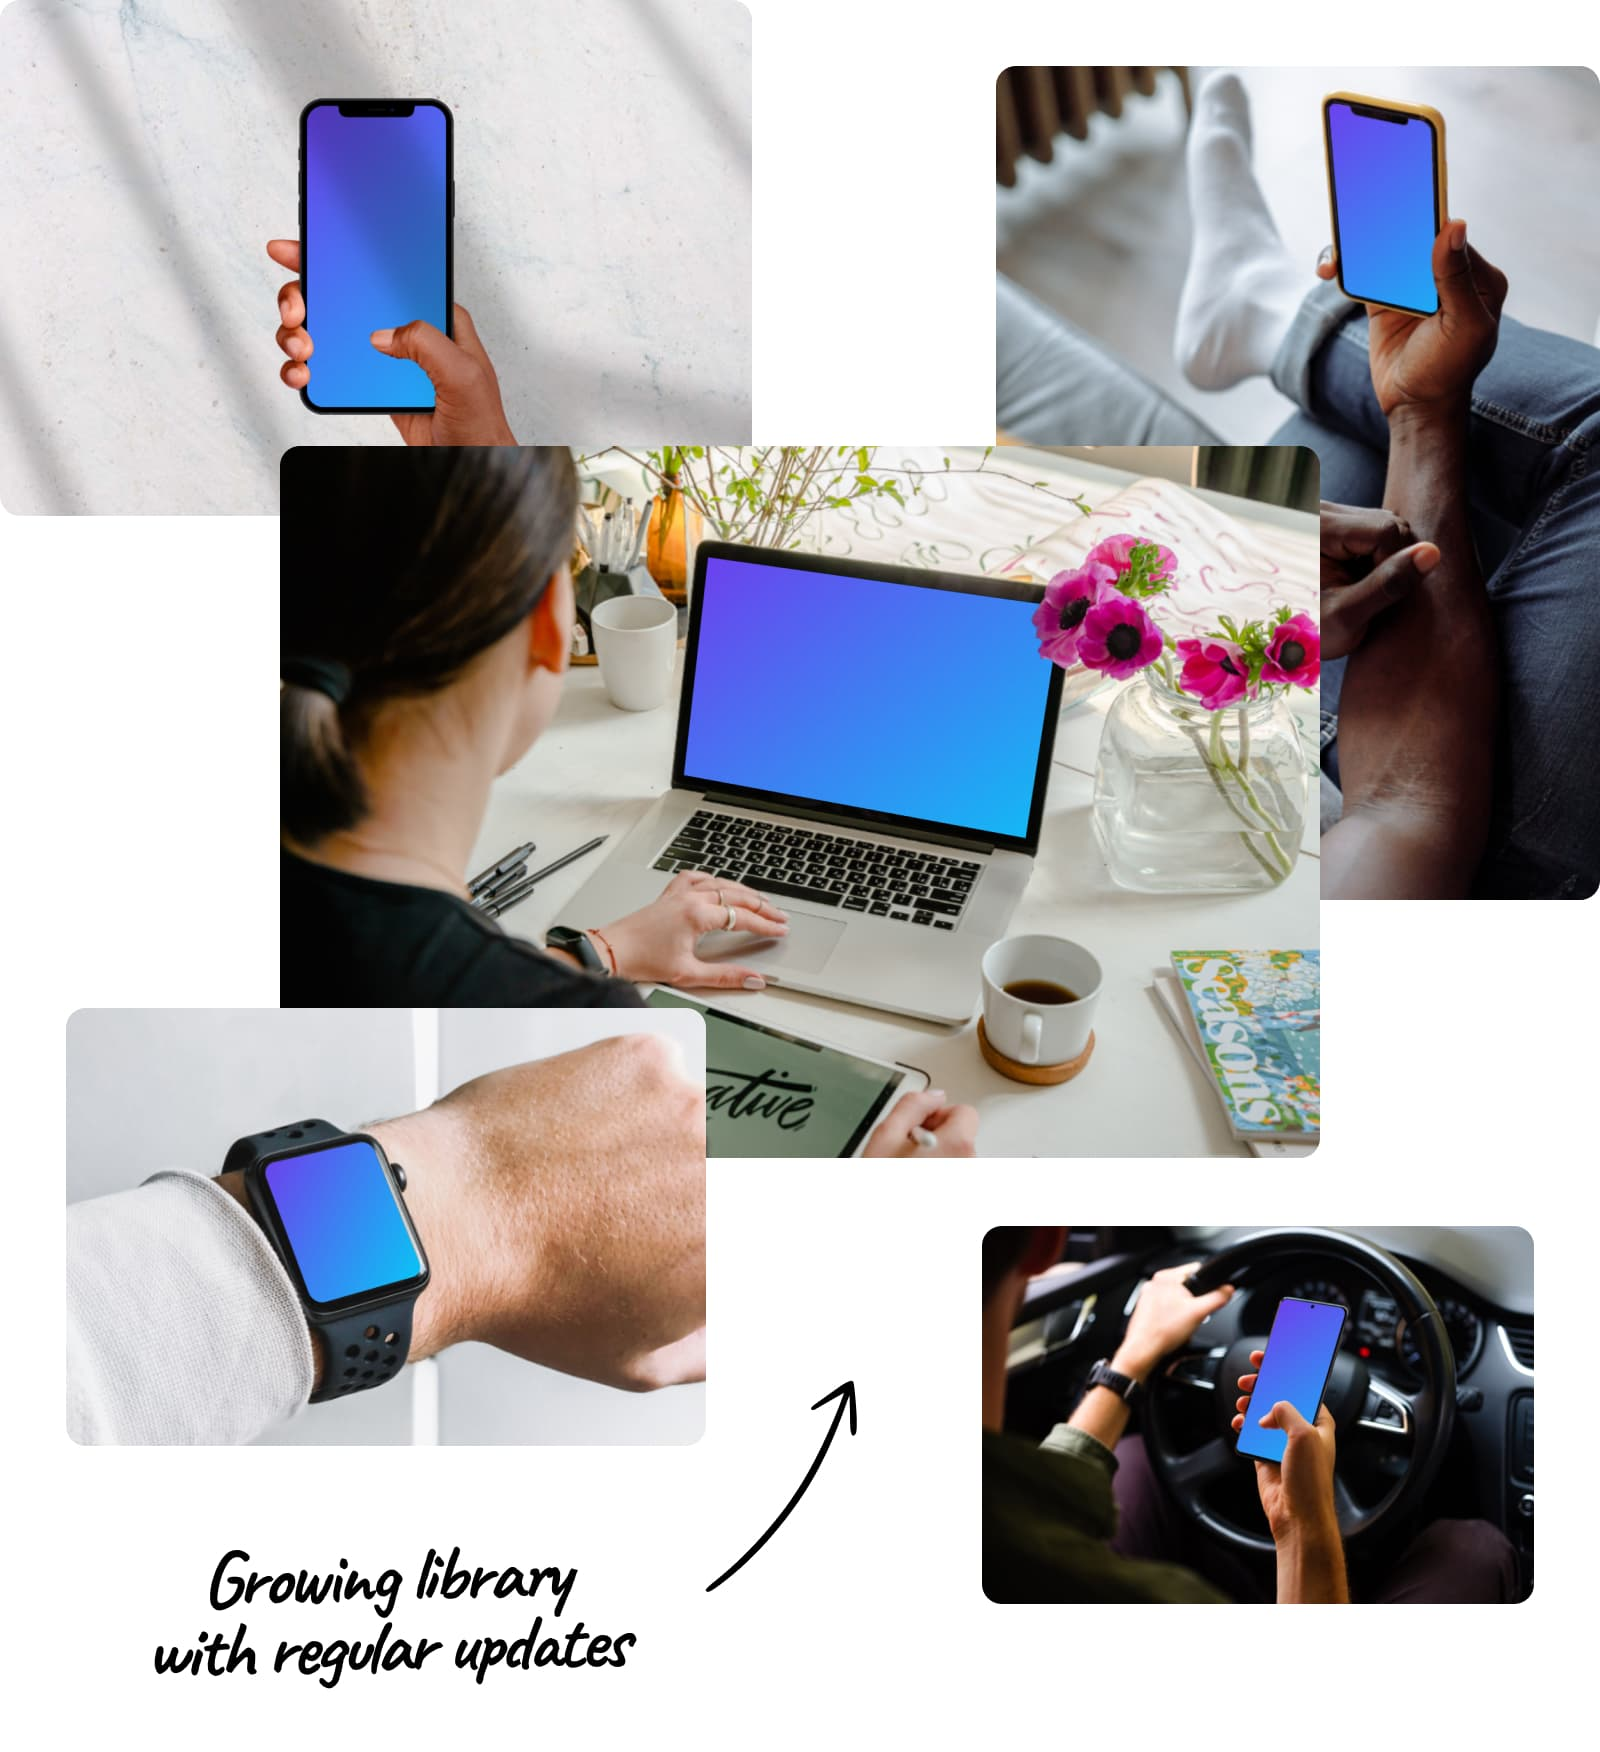 Growing library of device mockups